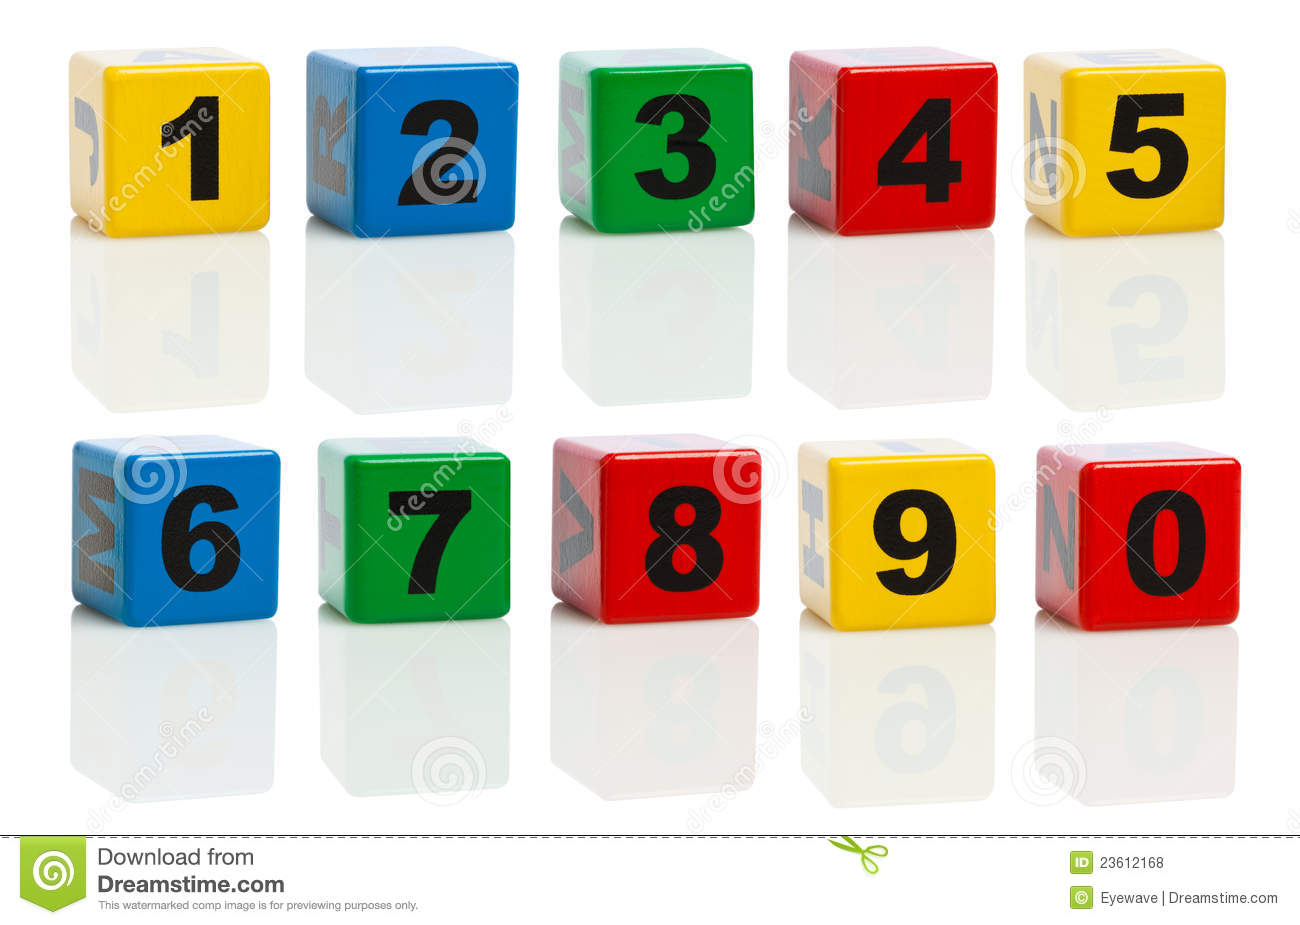 Royalty Free Stock Photos: Building Blocks With Numbers From 0 to 10: dreamstime.com/royalty-free-stock-photos-building-blocks-numbers-0...